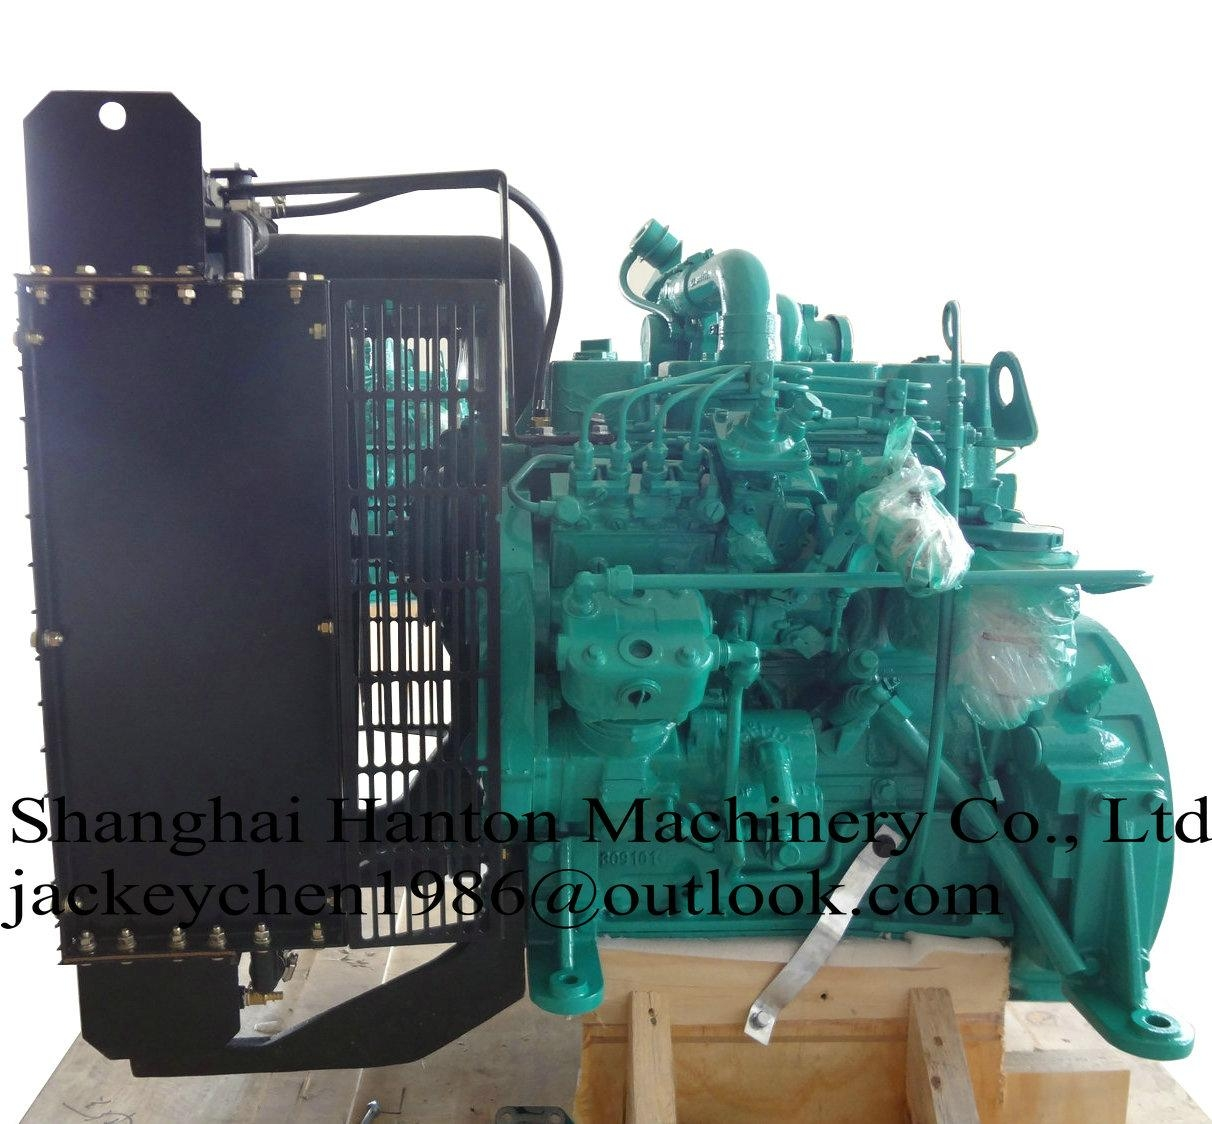 Cummins 4BT3.9-C diesel engine for truck and construction engineering machinery 1